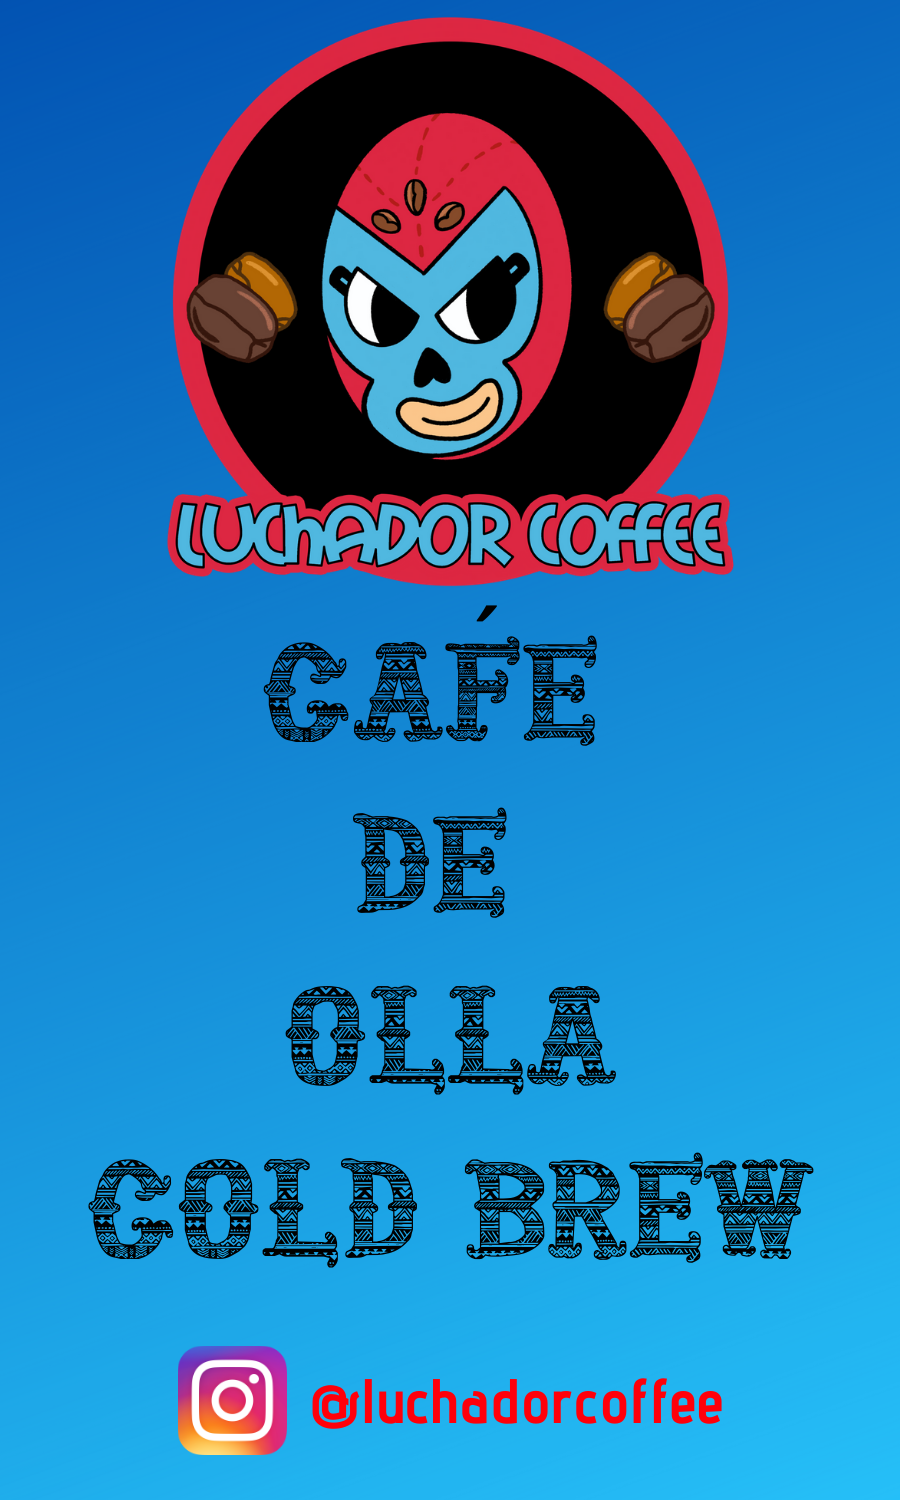 Cafe de Olla Cold Brew